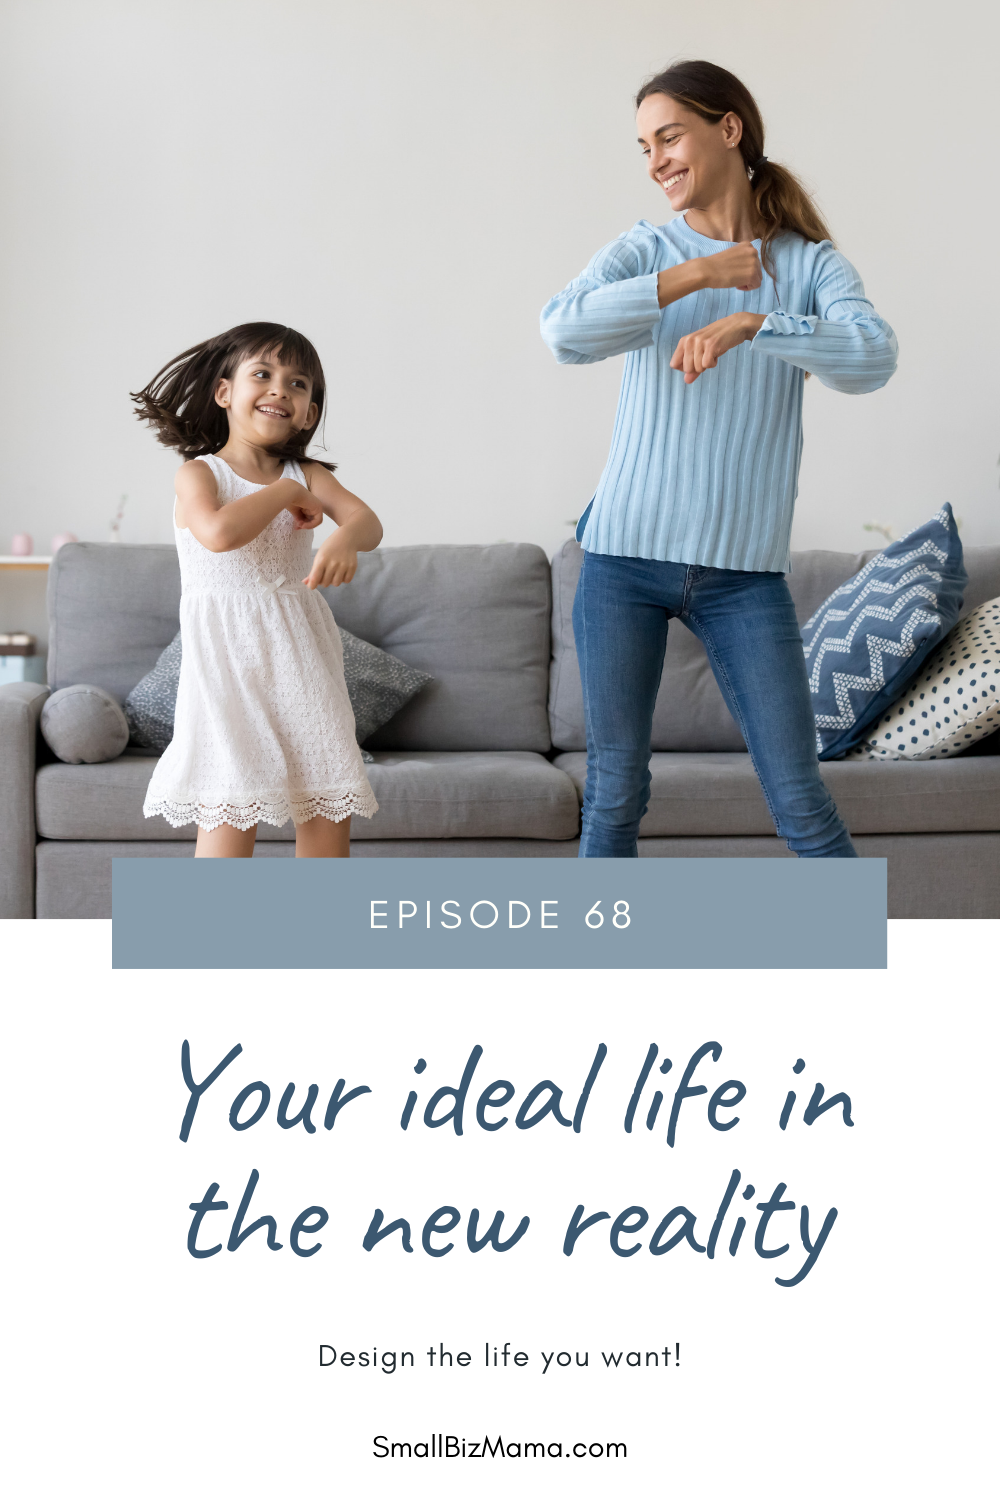 Episode 68: Your ideal life in the new reality